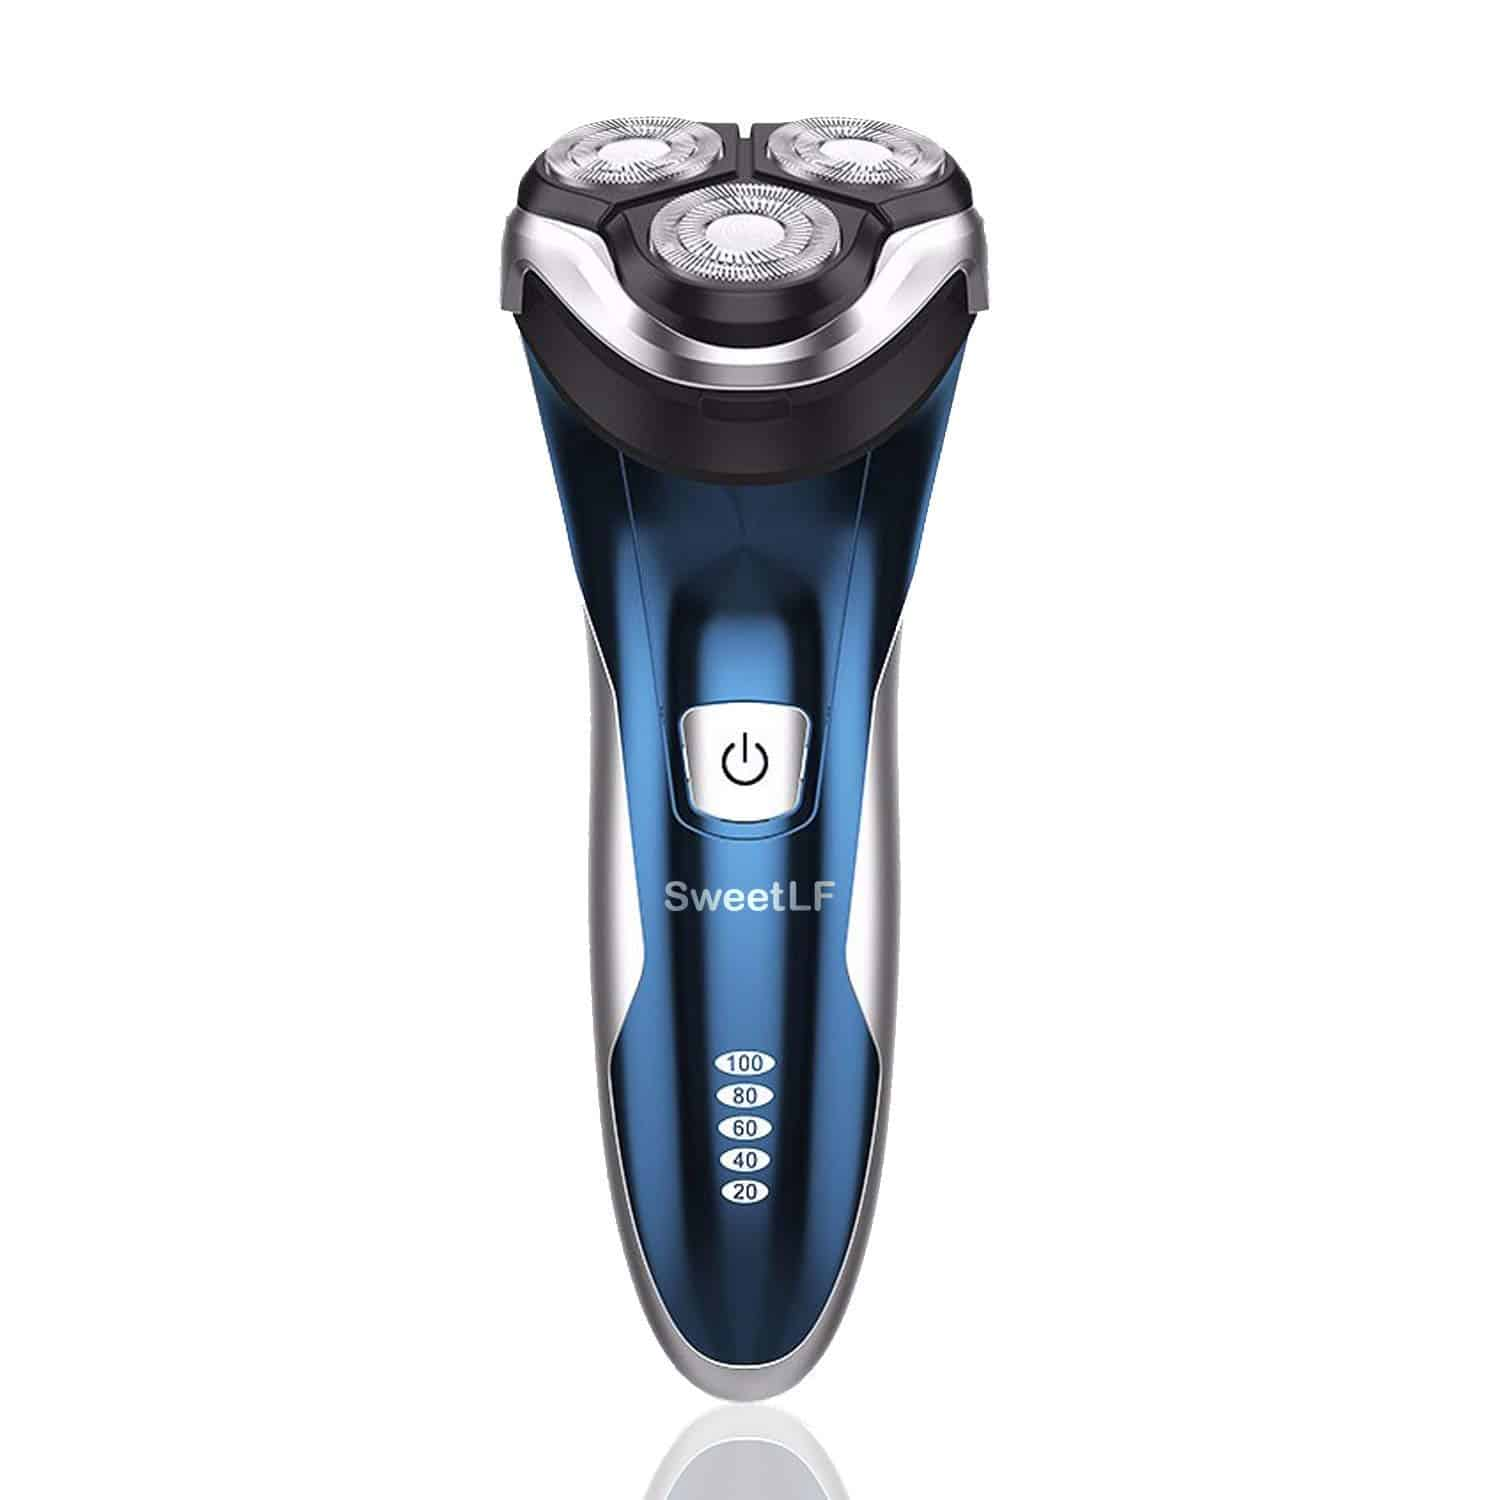 SweetLF 3D Electric Shaver